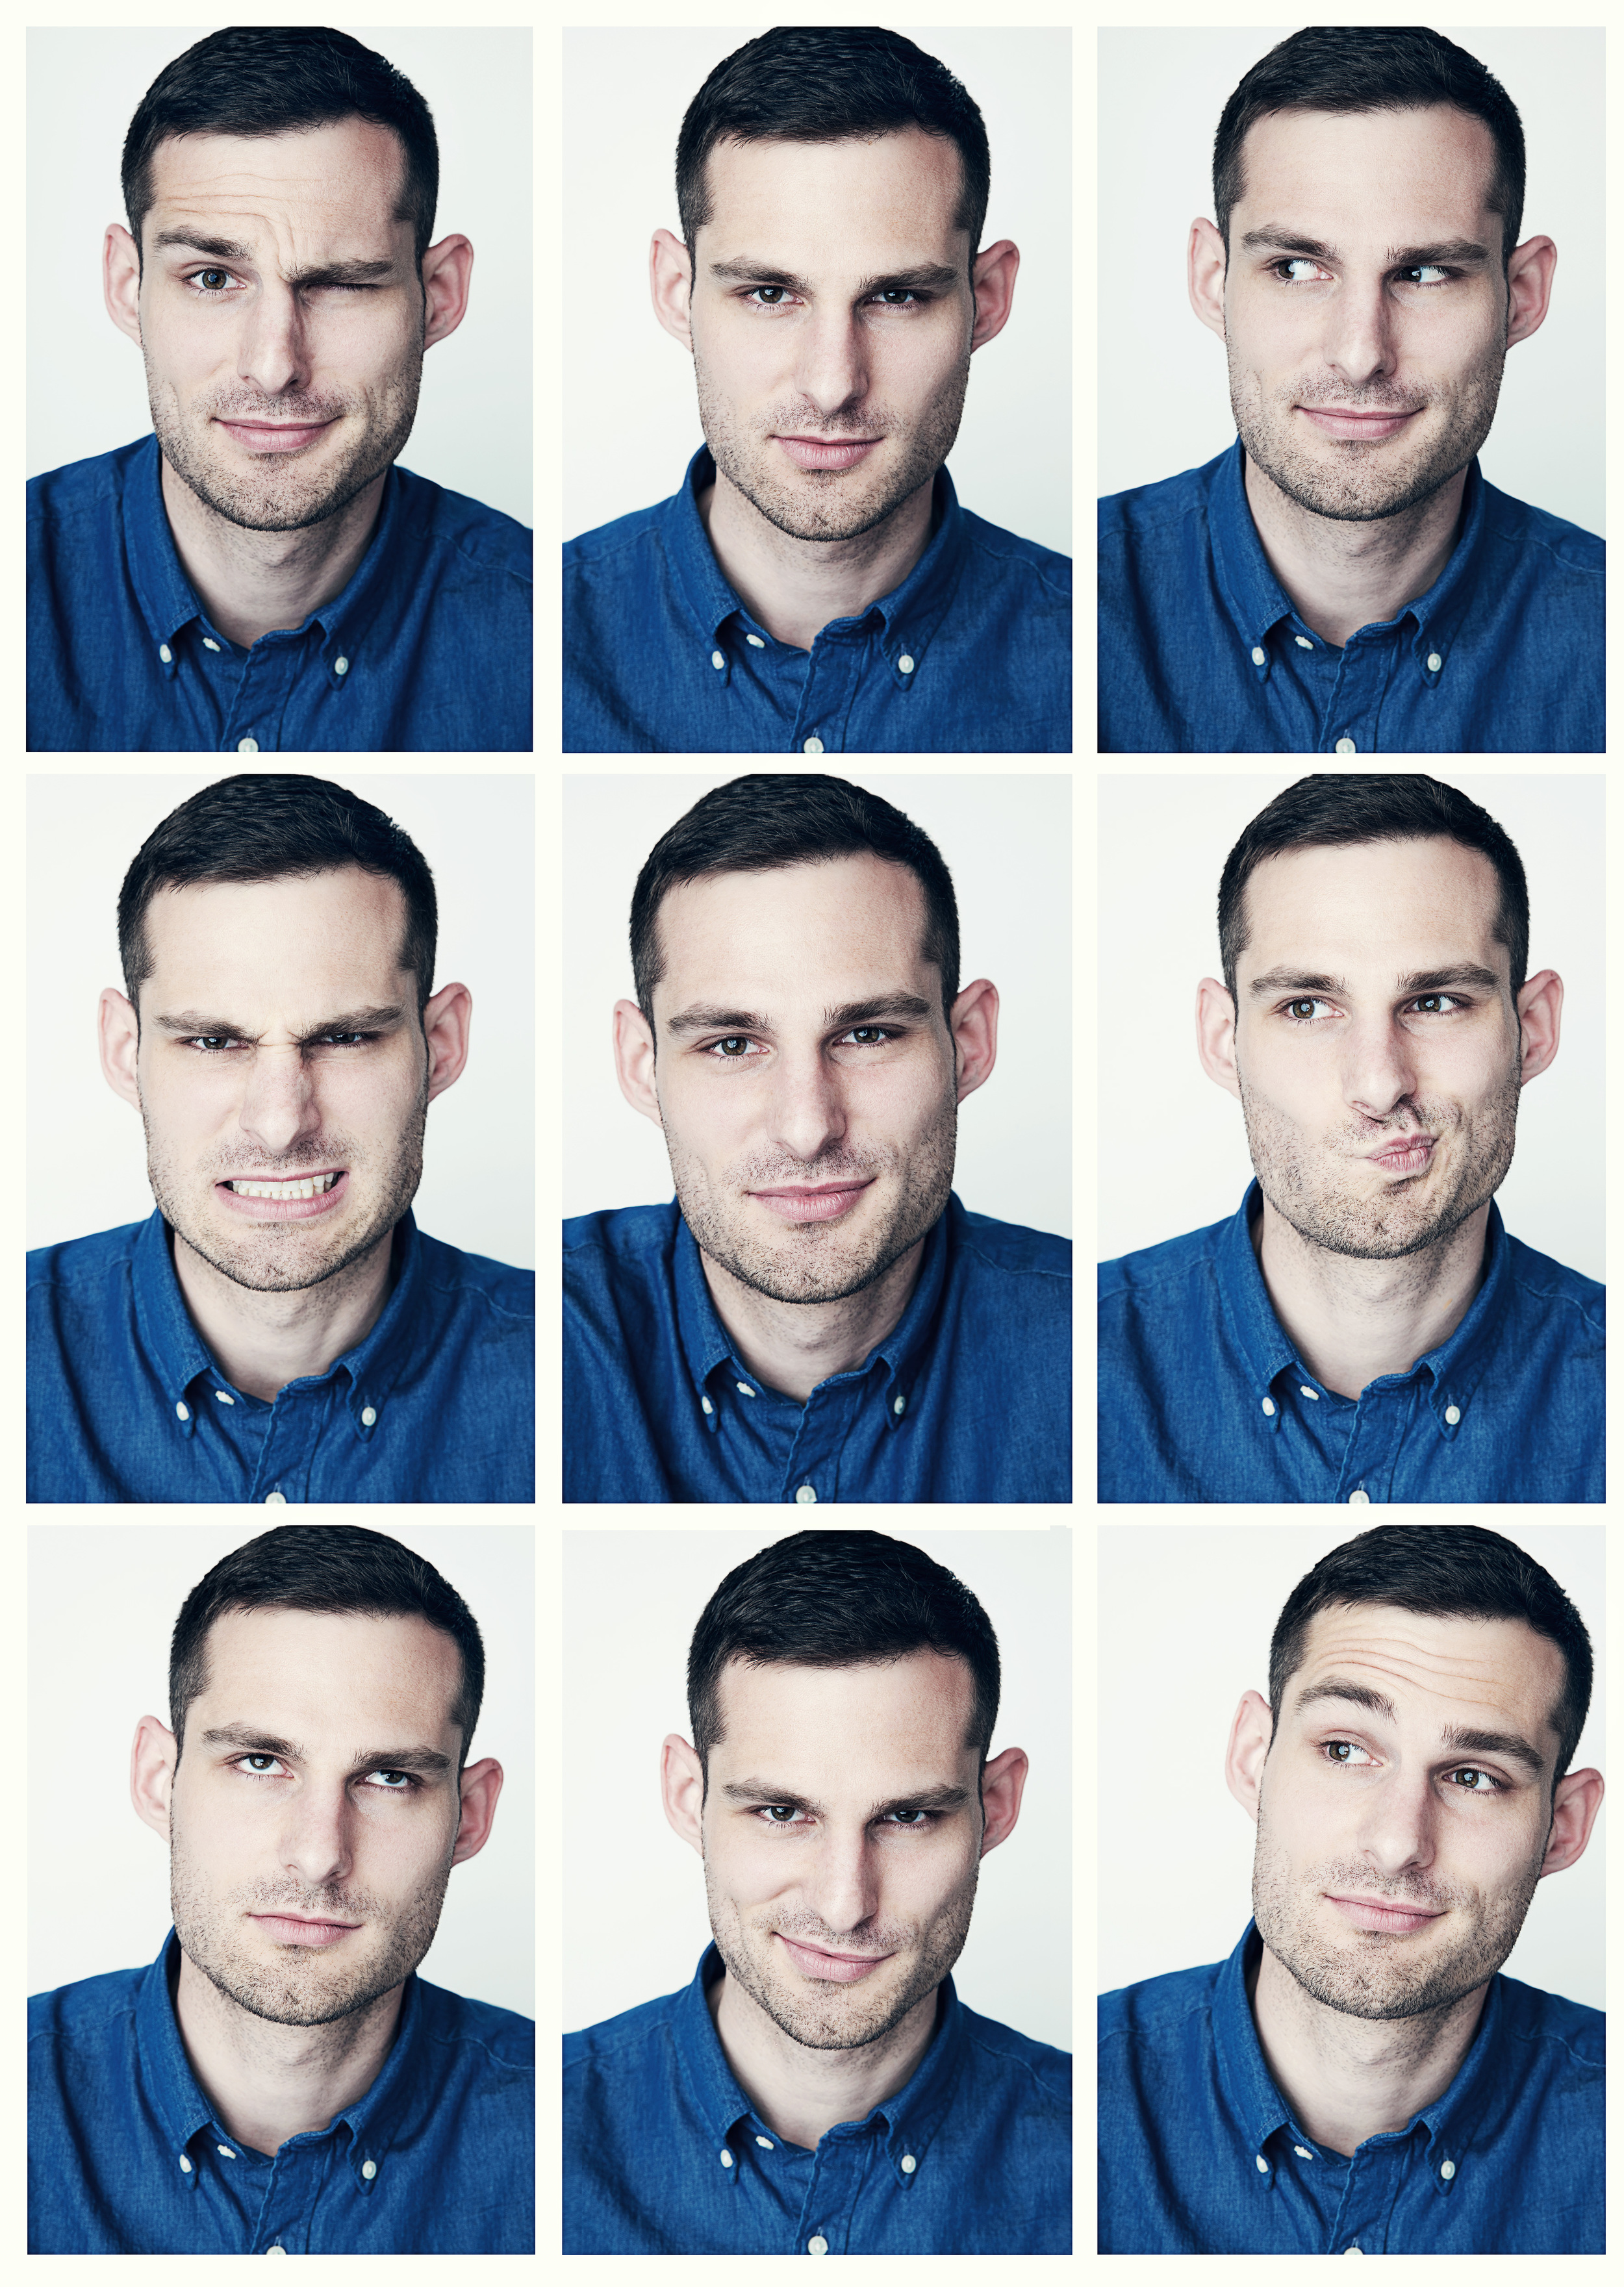 Andy_expressions-copy.jpg